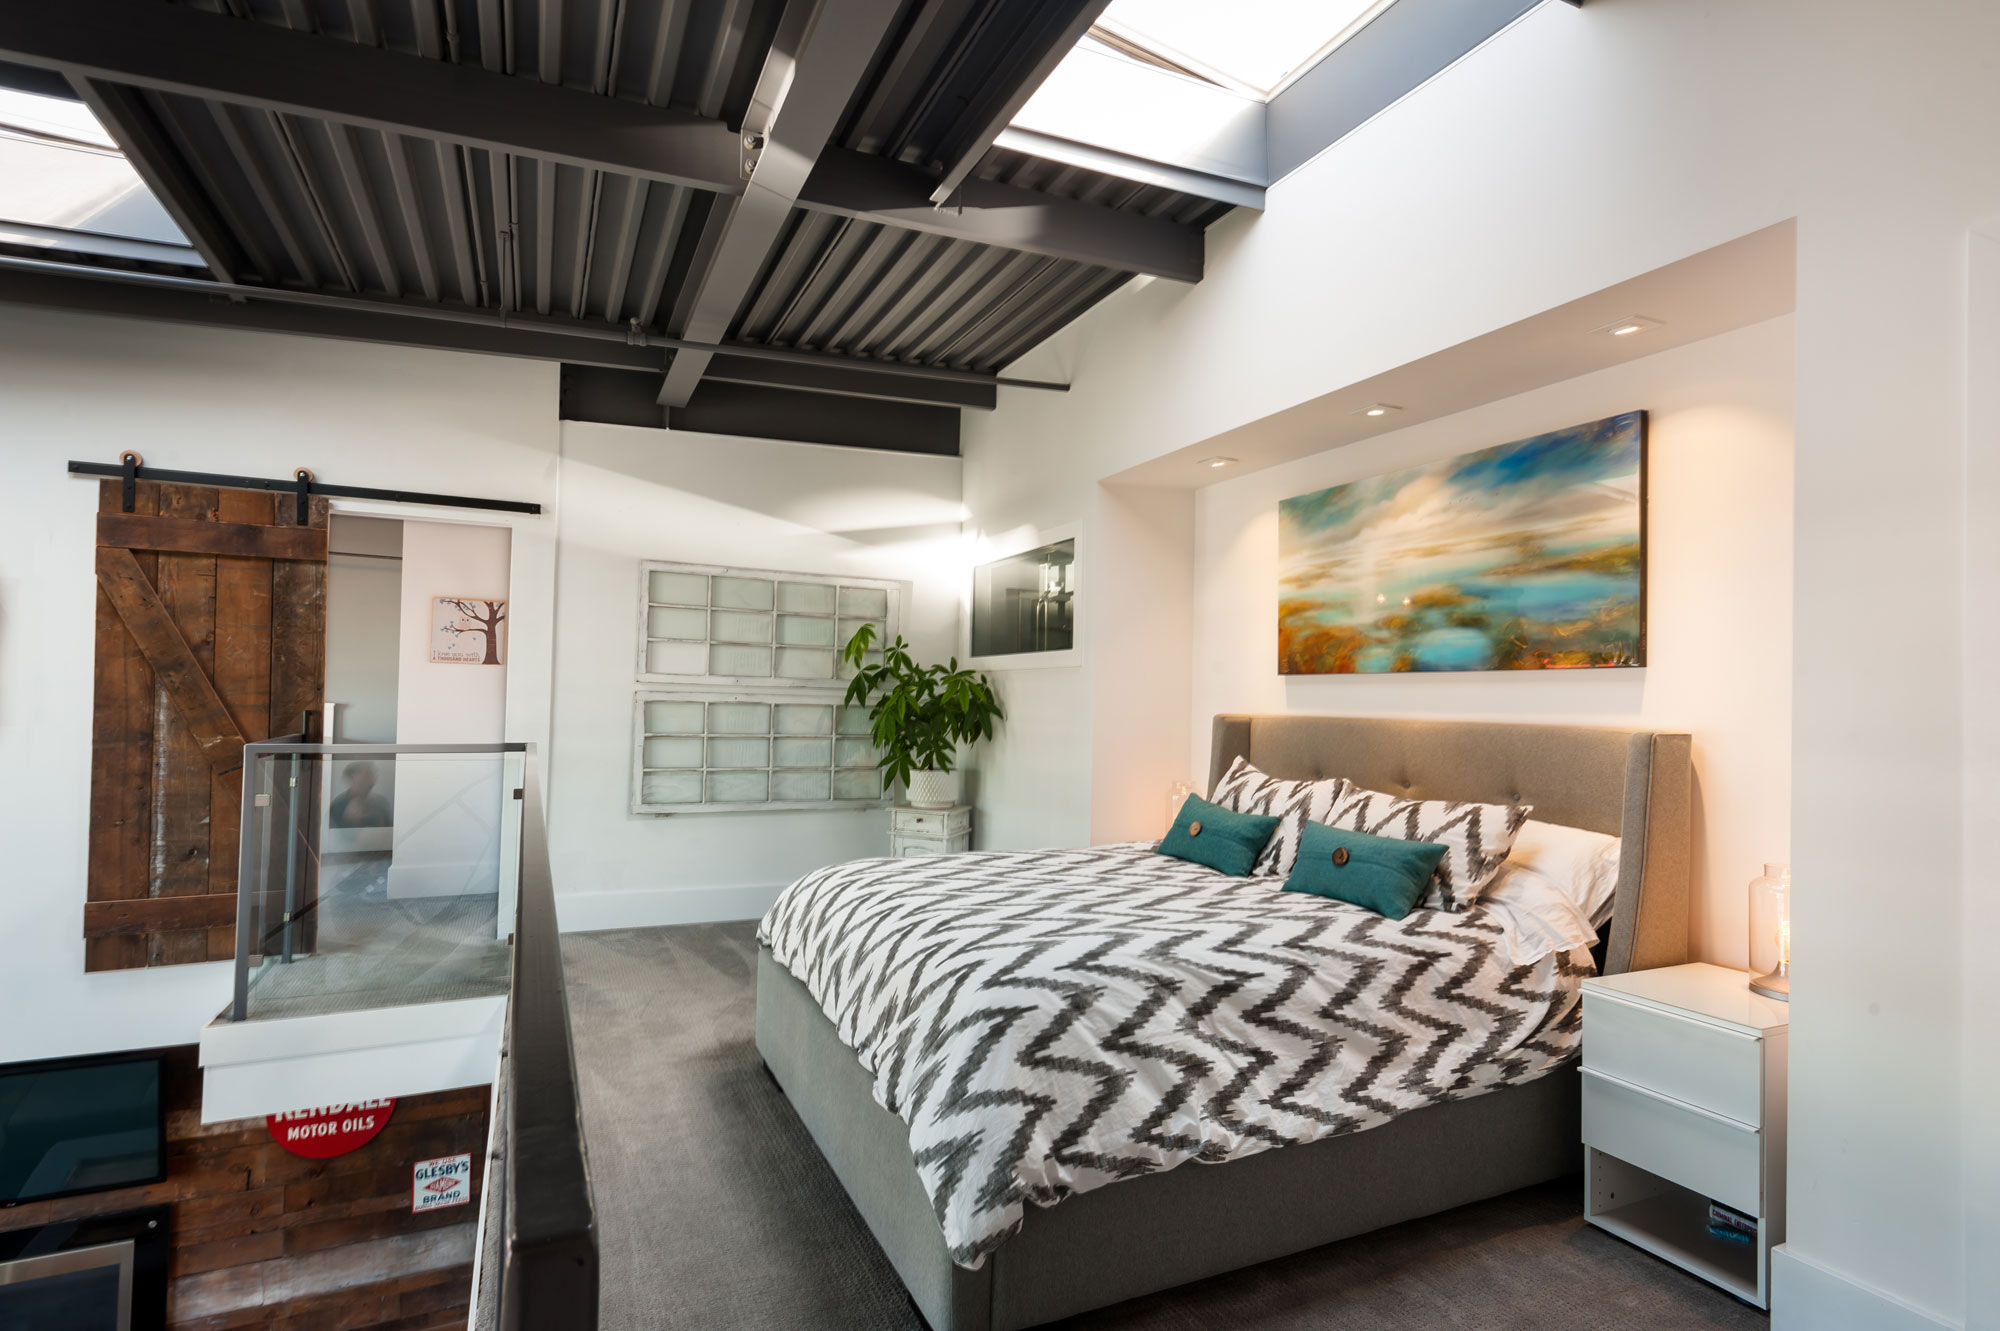 2000x1331 Vintage Modern Double Height Loft In Vancouver CAANdesign Pic 624635 Recommended Office Furniture